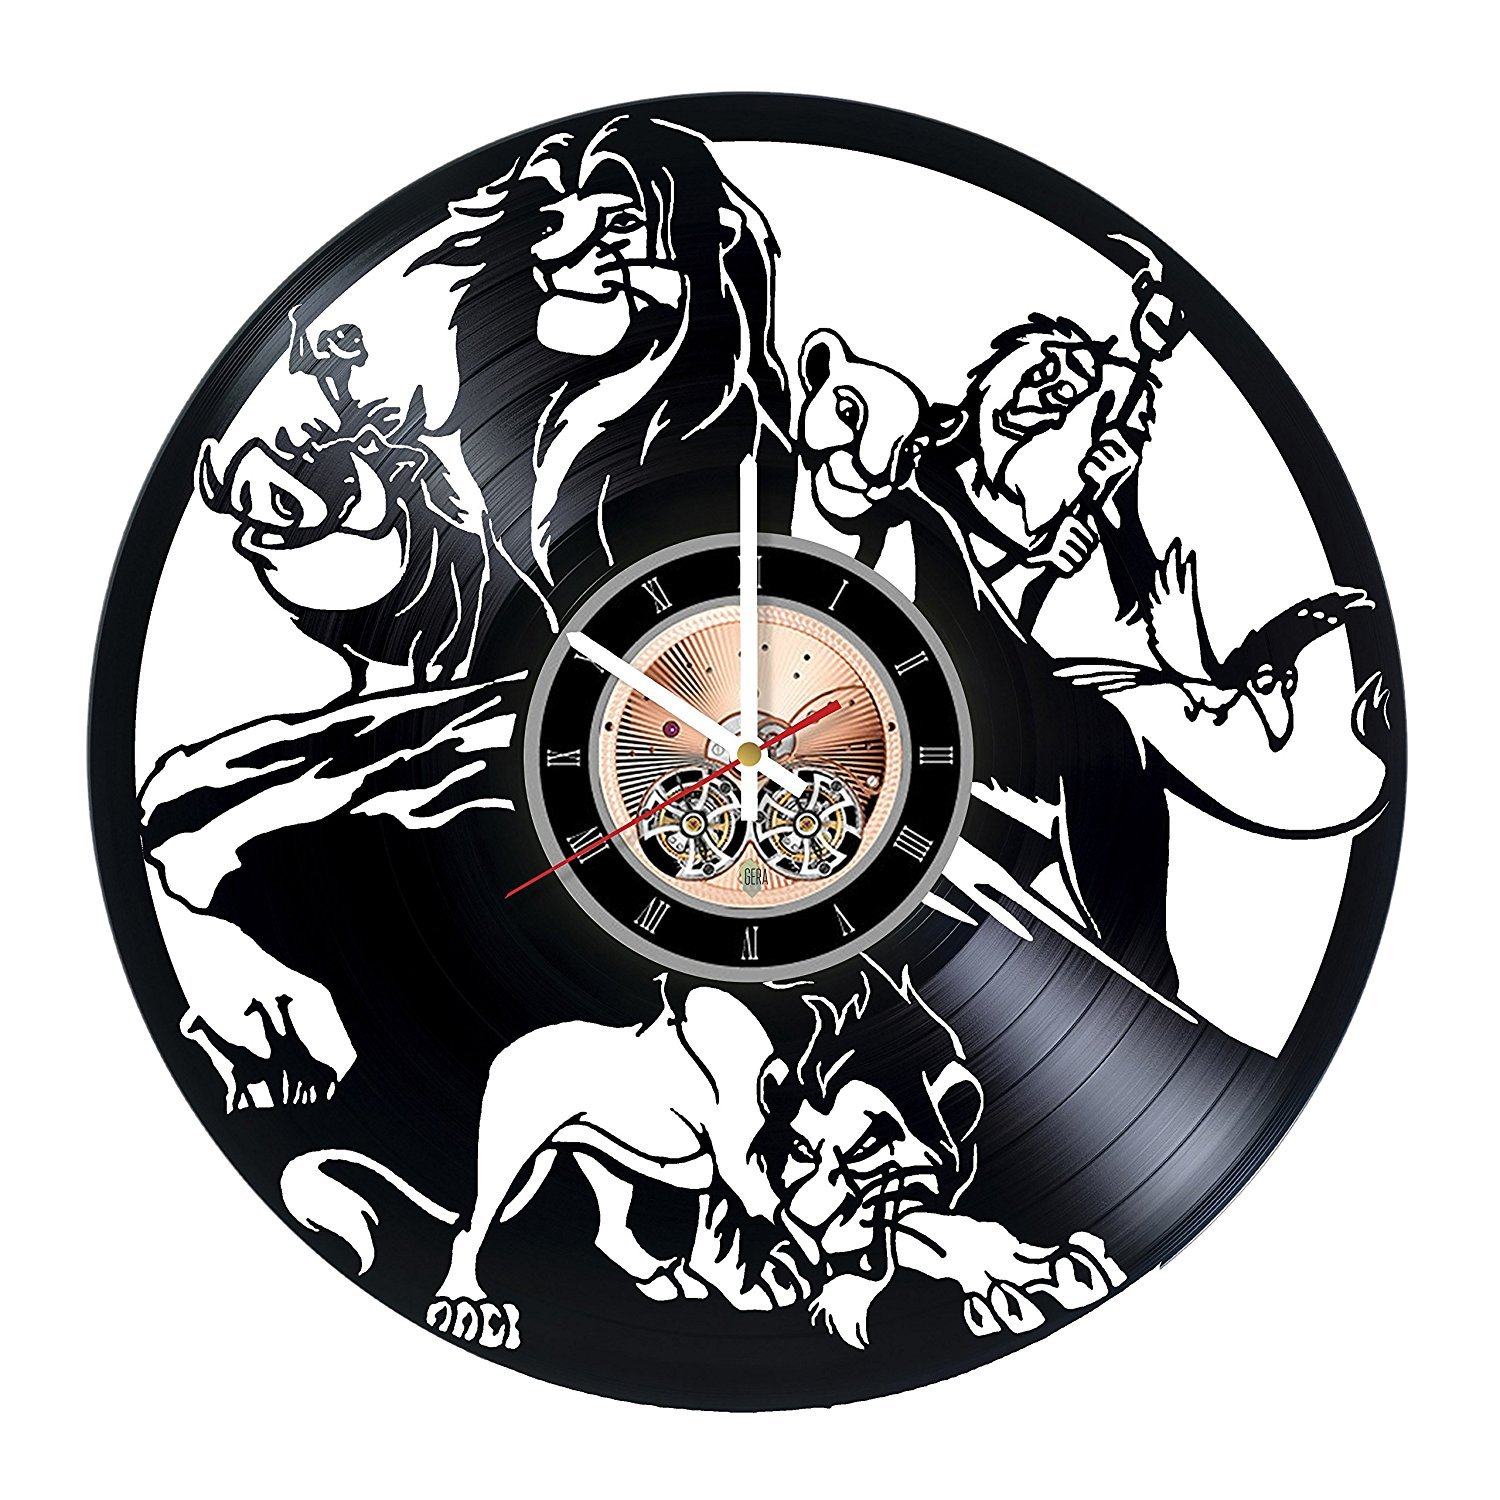 Amazon.com: The Lion King Vinyl Record Wall Clock - Kids Room wall decor - Gift ideas for sister and brother, teens - Cartoon Unique Art Design: Home & ...